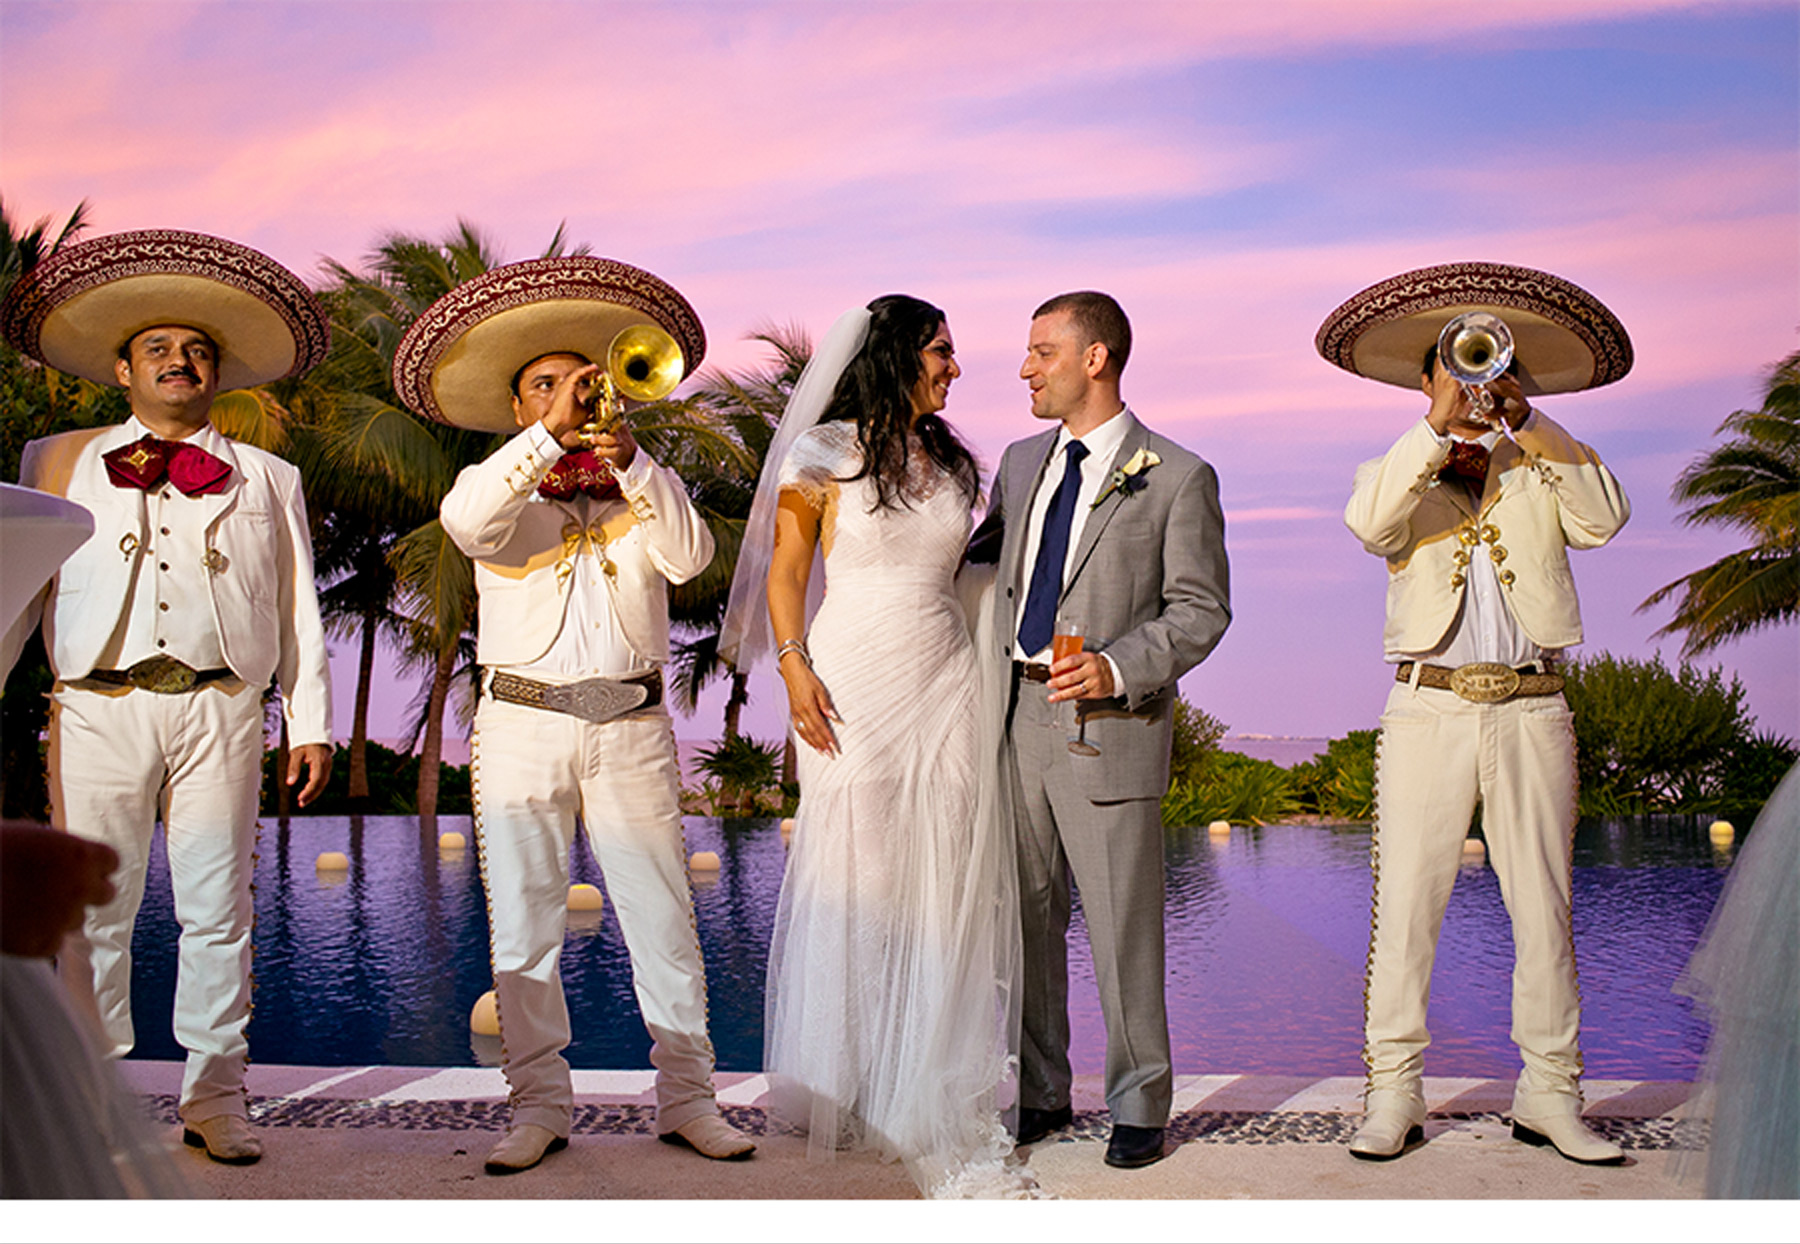 Our Muse - Tropical Wedding in Playa Mujeres, Mexico: Valerie and Thomas, Part 4 - Be inspired by Valerie and Thomas' tropical wedding in Playa Mujeres, Mexico. - reception, wedding, ceci new york, inspiration, ceci johnson, celebration, bride, groom, event, luxury wedding invitations,  couture, custom wedding invitations, ceci new york, efren guiterrez wedding films, villa balam-ha, playa mujeres, mexico, luxe destination weddings, the beloved hotel, planner 1 events, mannia cancun, monique lhuillier, jimmy choo, j. crew bridal, david yurman